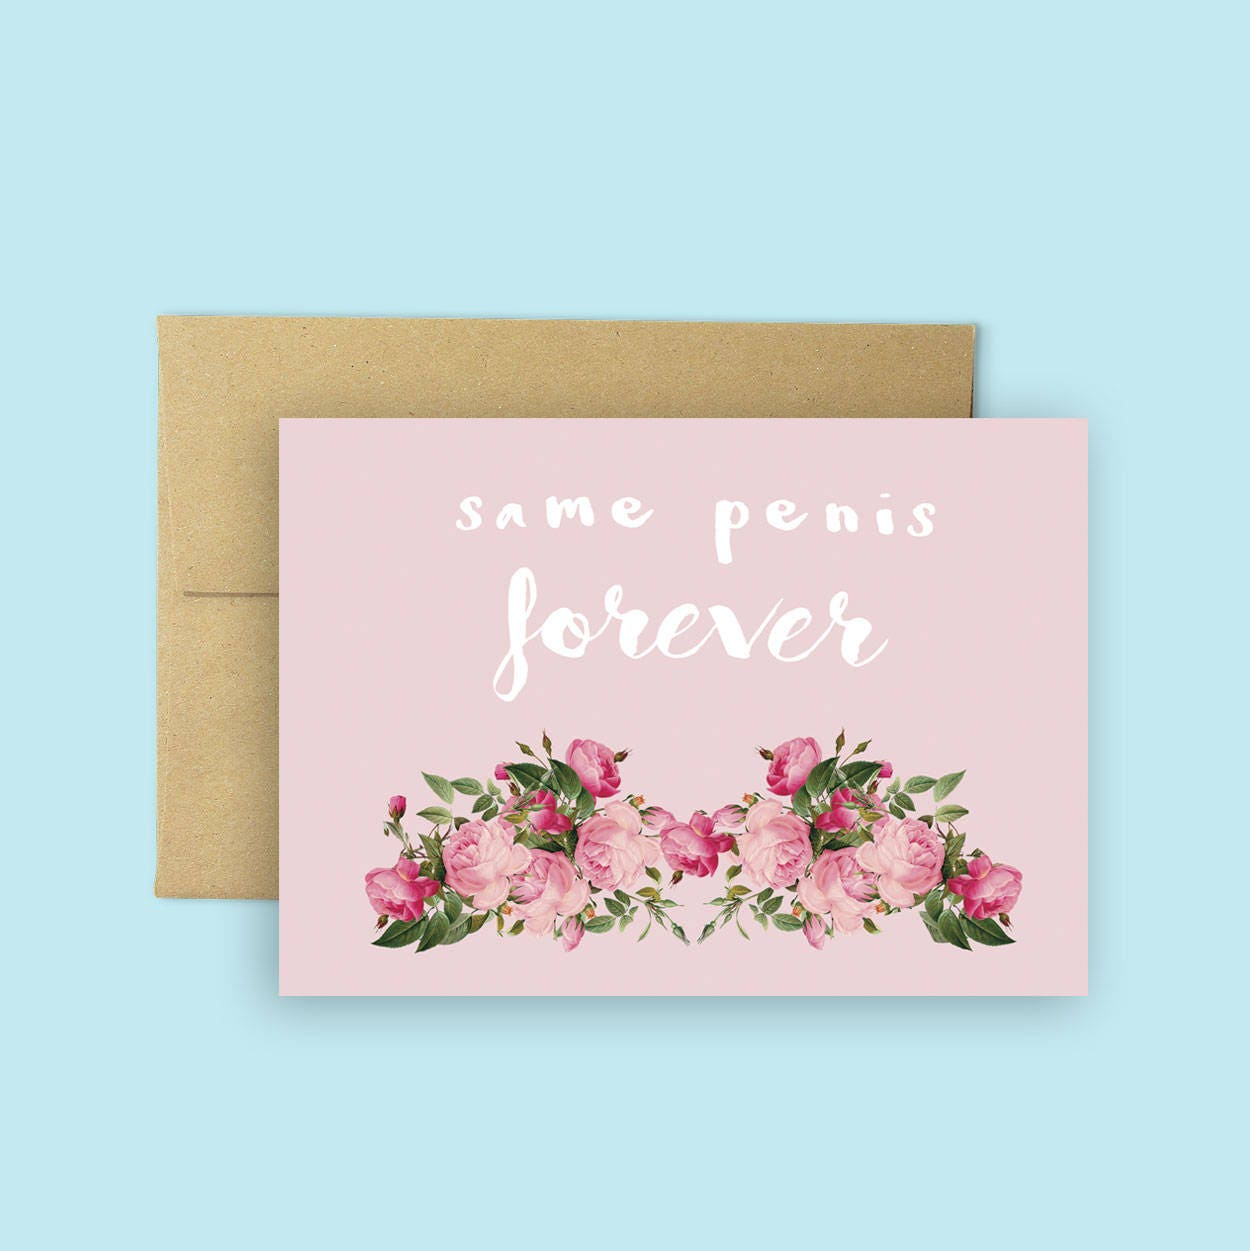 Same penis forever funny bridal shower card funny engagement zoom kristyandbryce Image collections